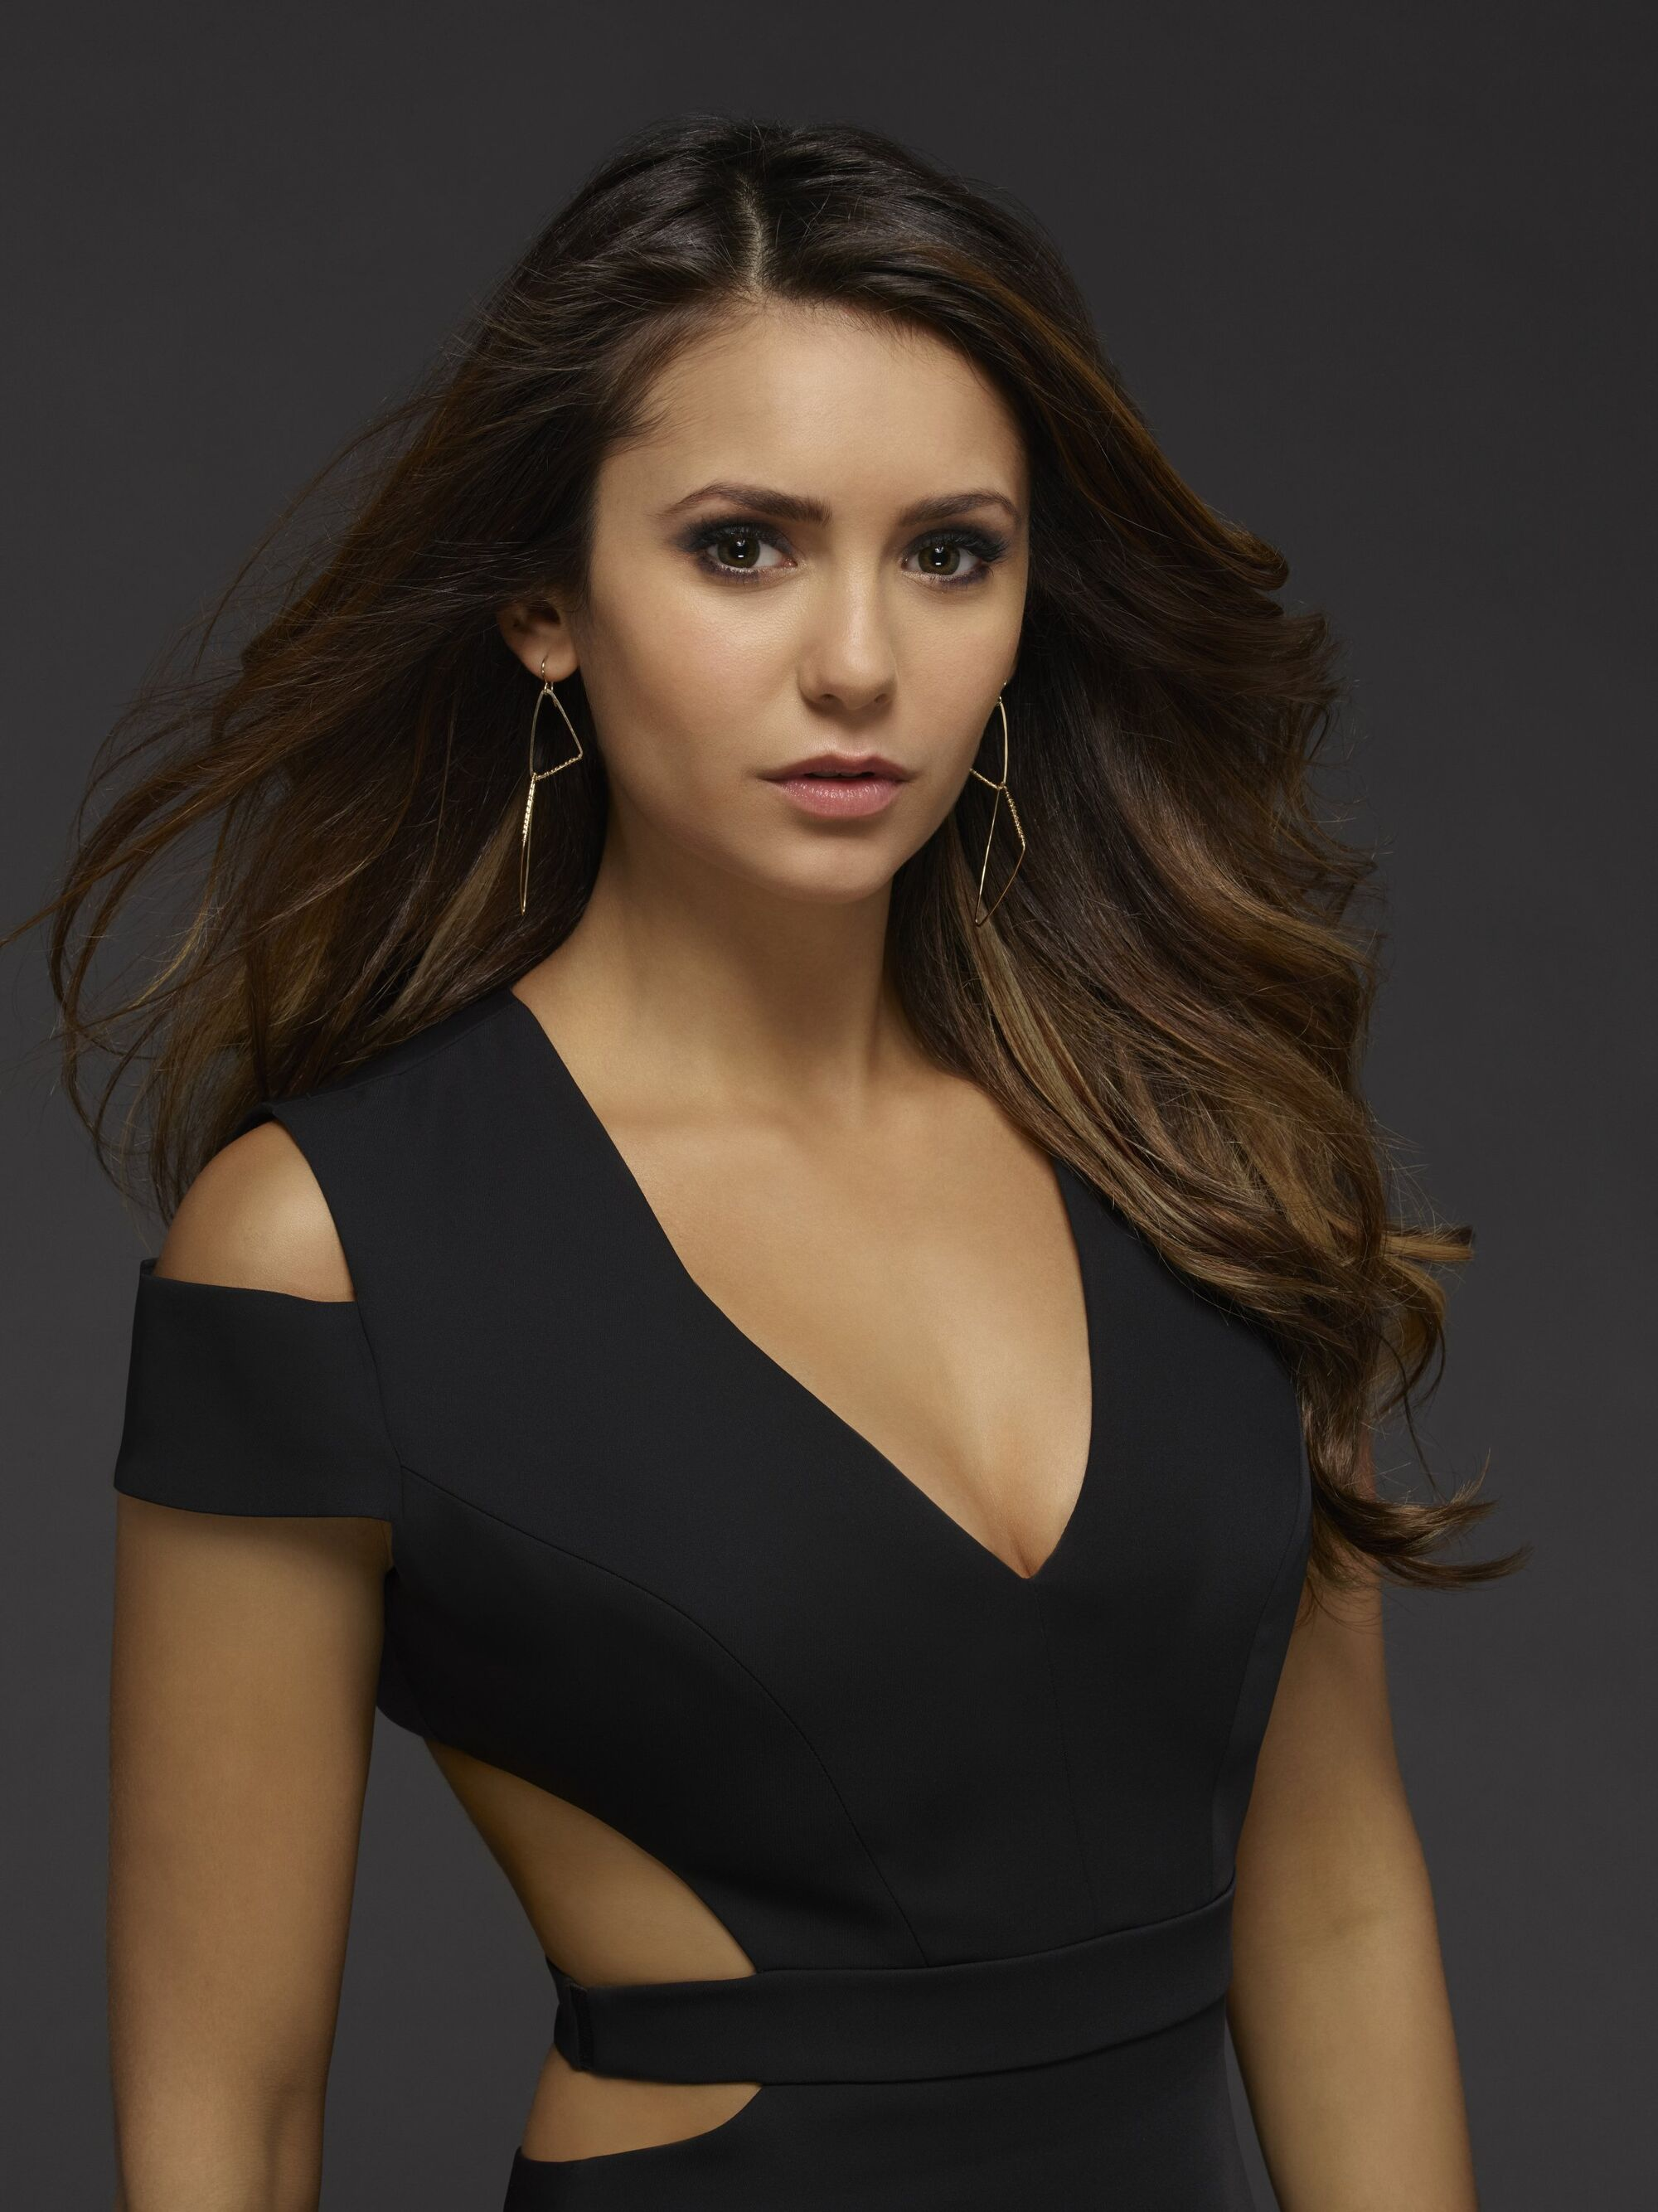 elena gilbert/appearance | the vampire diaries wiki | fandom